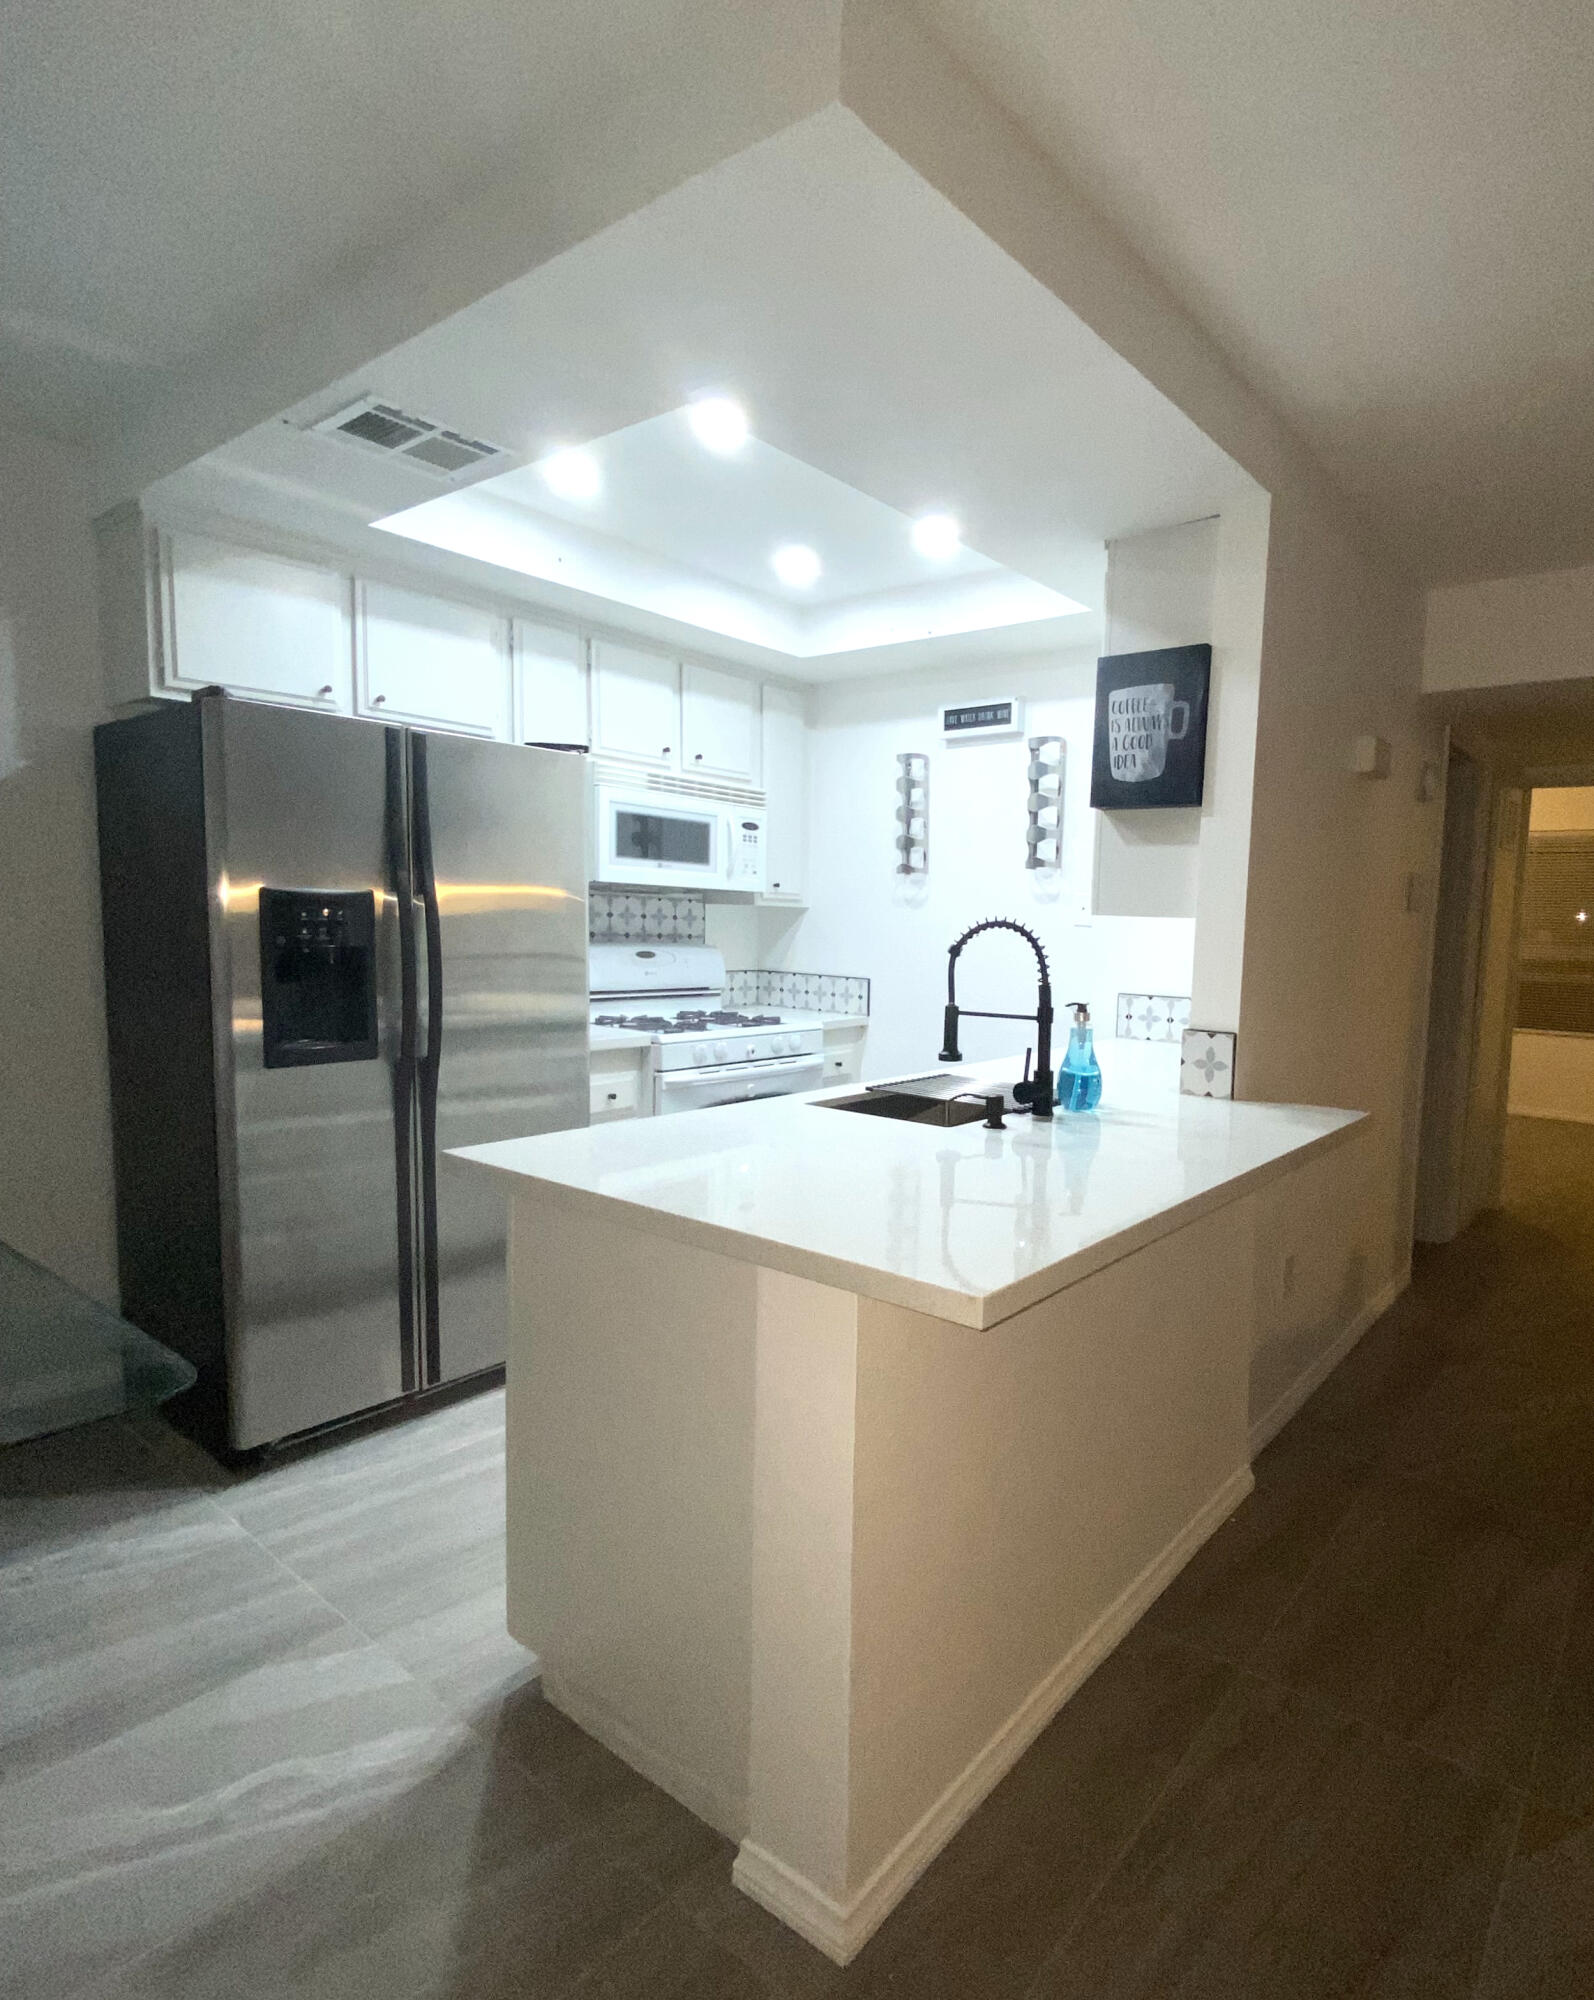 Great property for 'SHORT TEARM RENTALS' Amazing  location in front of the Golf Course, end unit lots of natural lighting! All new beautiful floors, nice counter tops and great new vanity and shower !